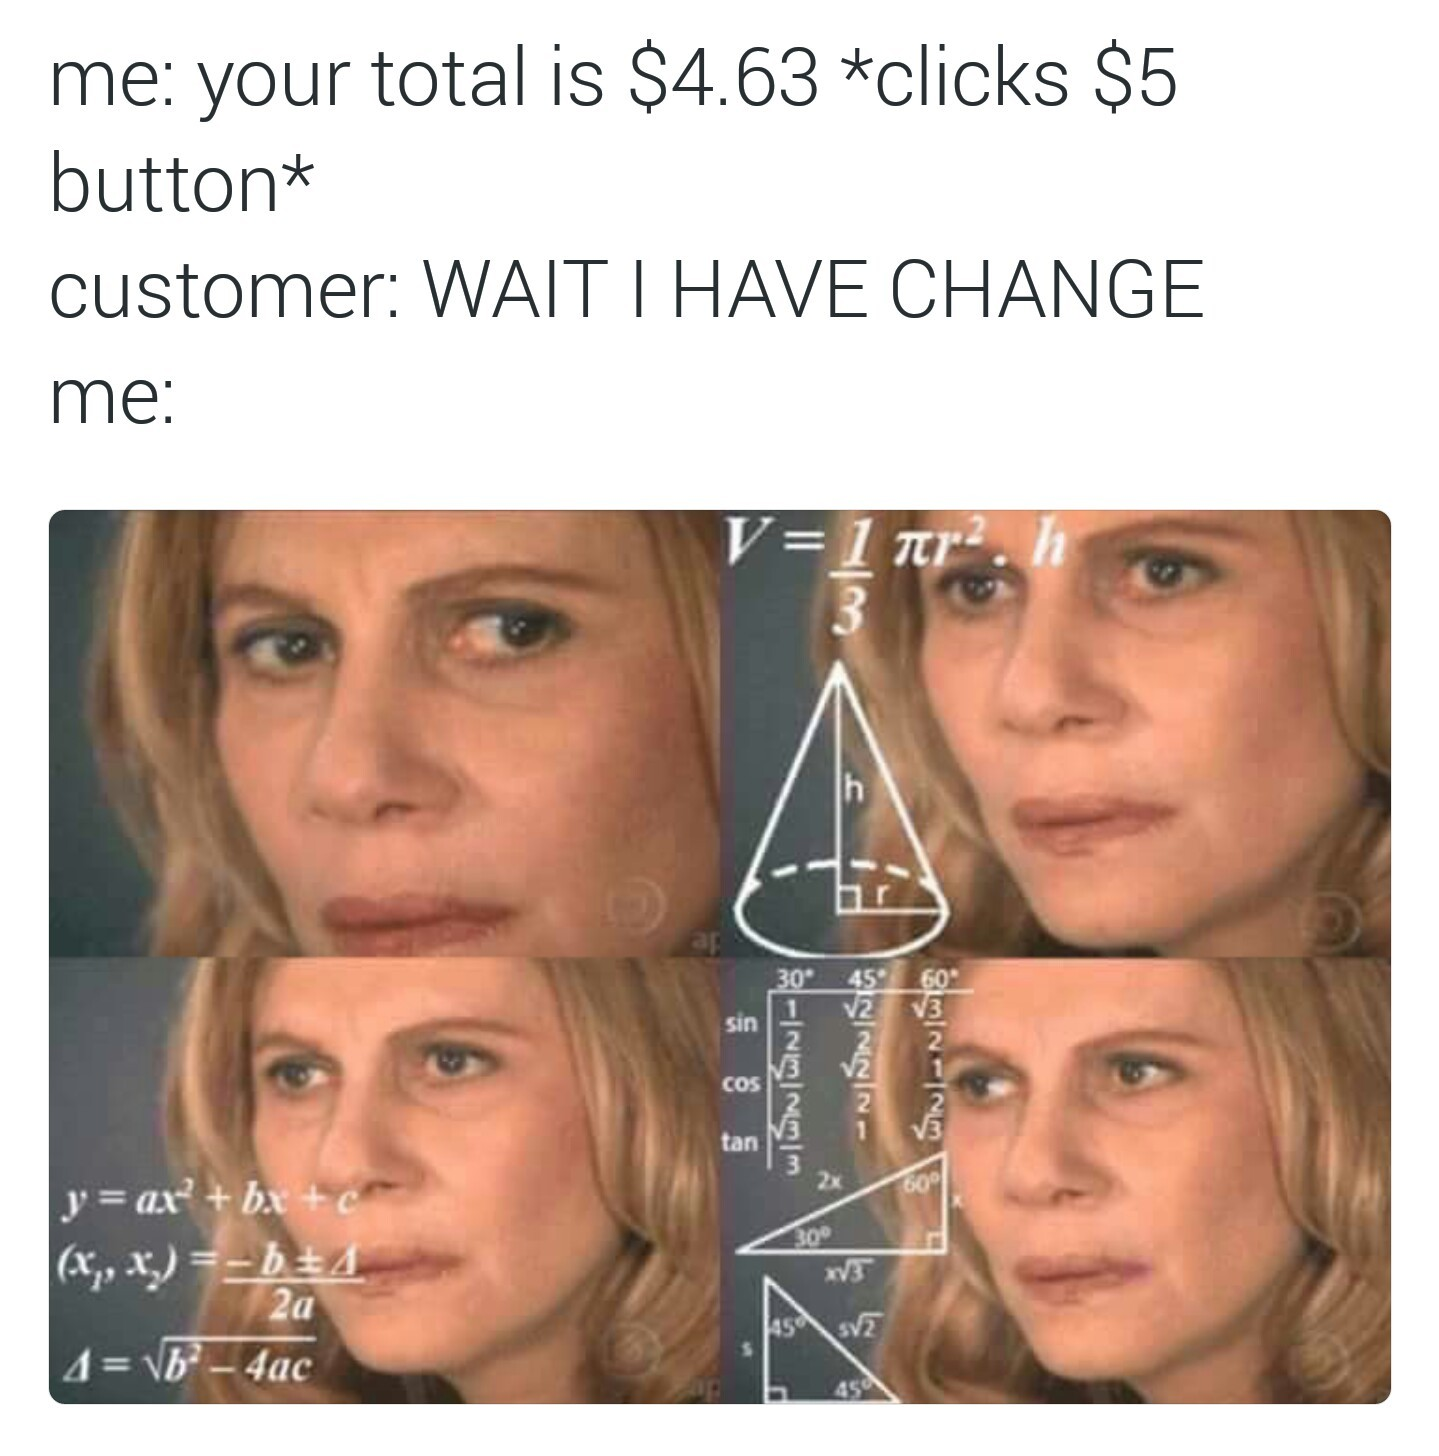 retail is for poor